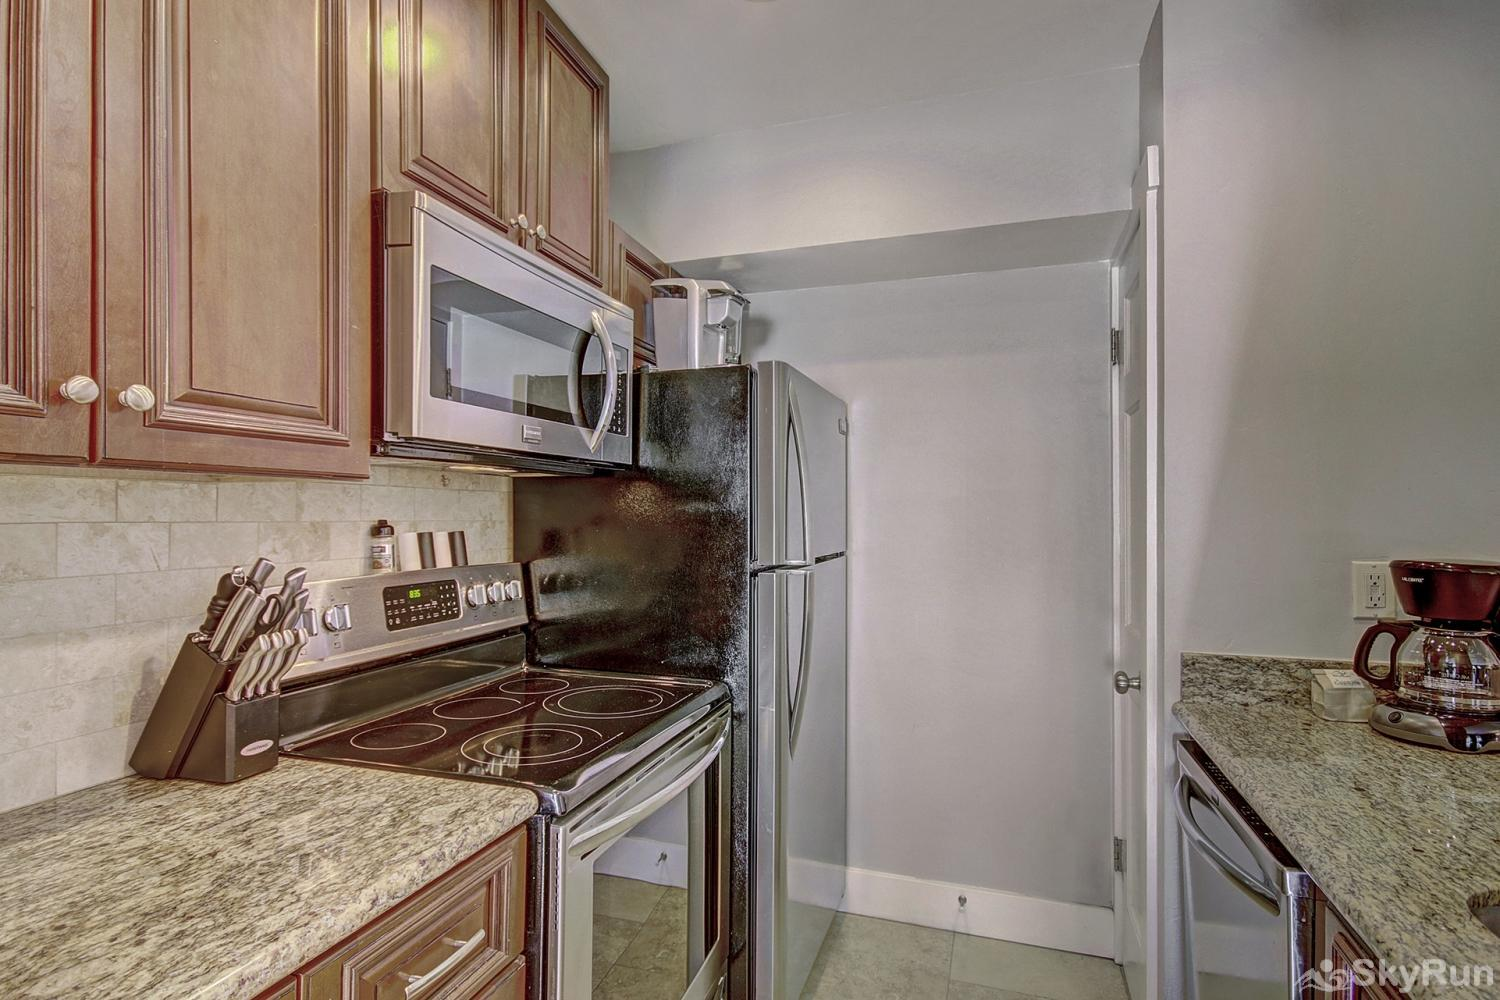 Forest Haus 112 Fully equipped kitchen updated with stainless steel appliances